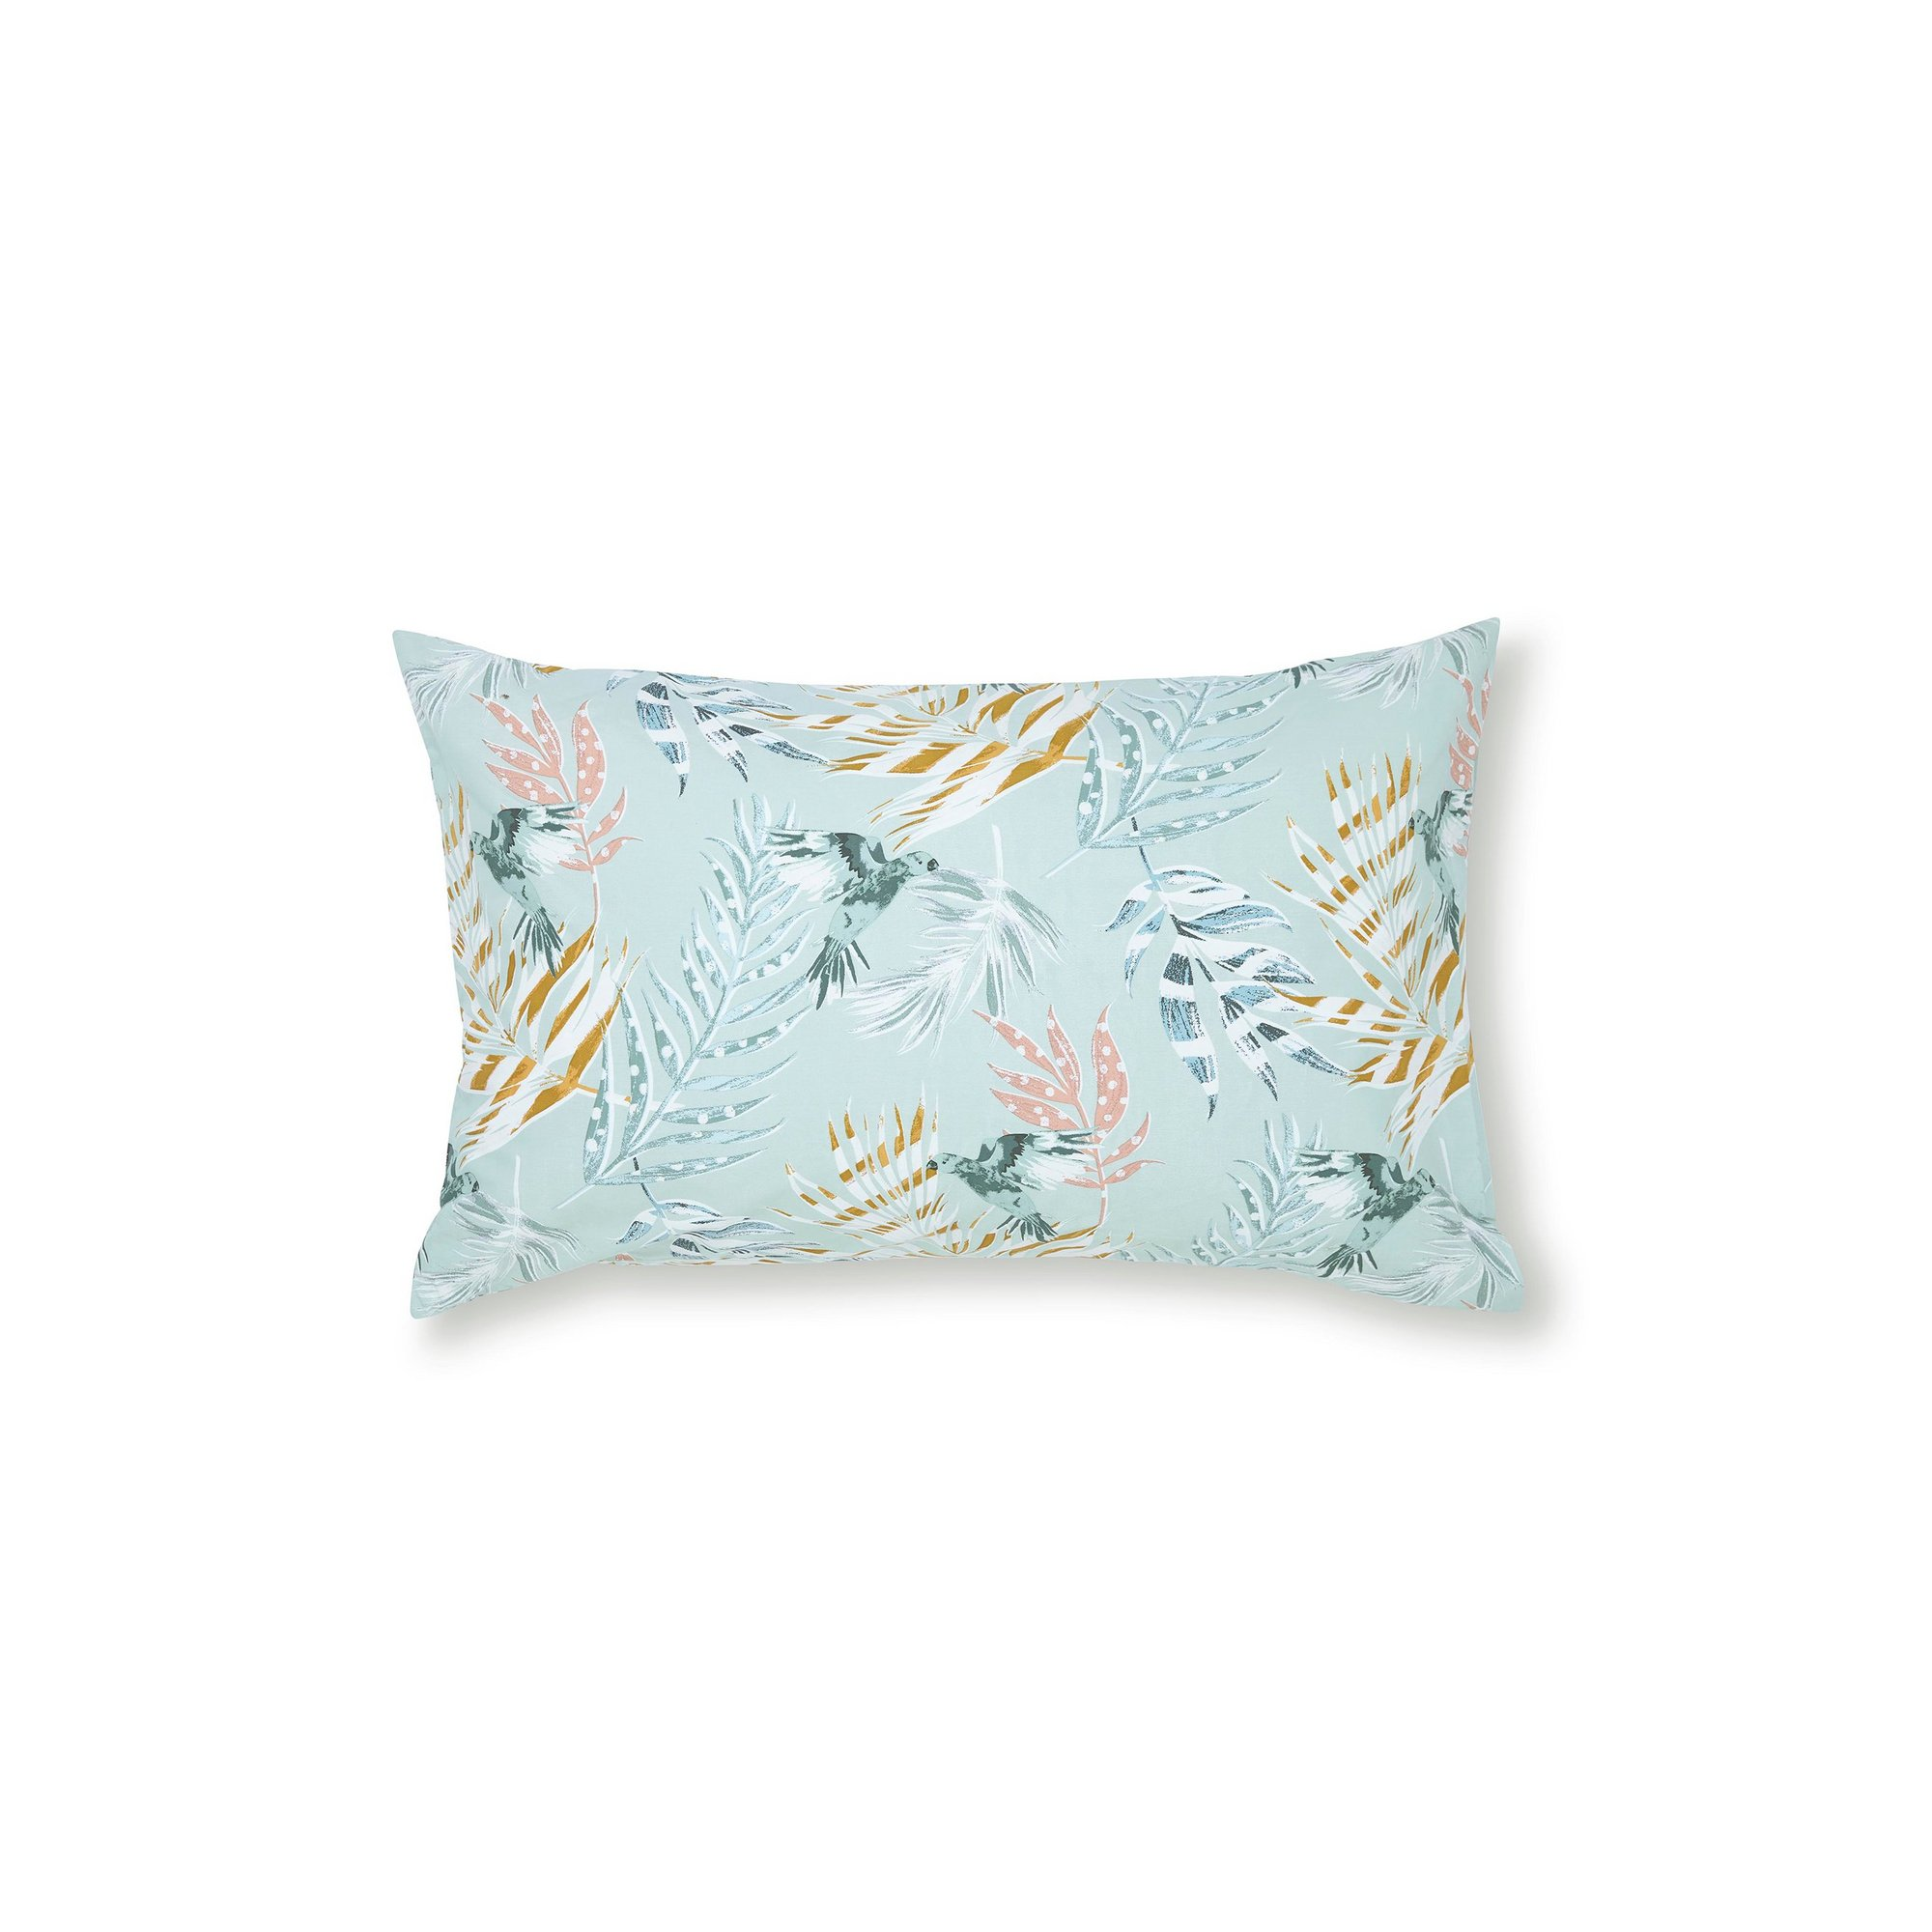 Image of Pair of Fat Face Paradise Parrot Standard Pillowcases